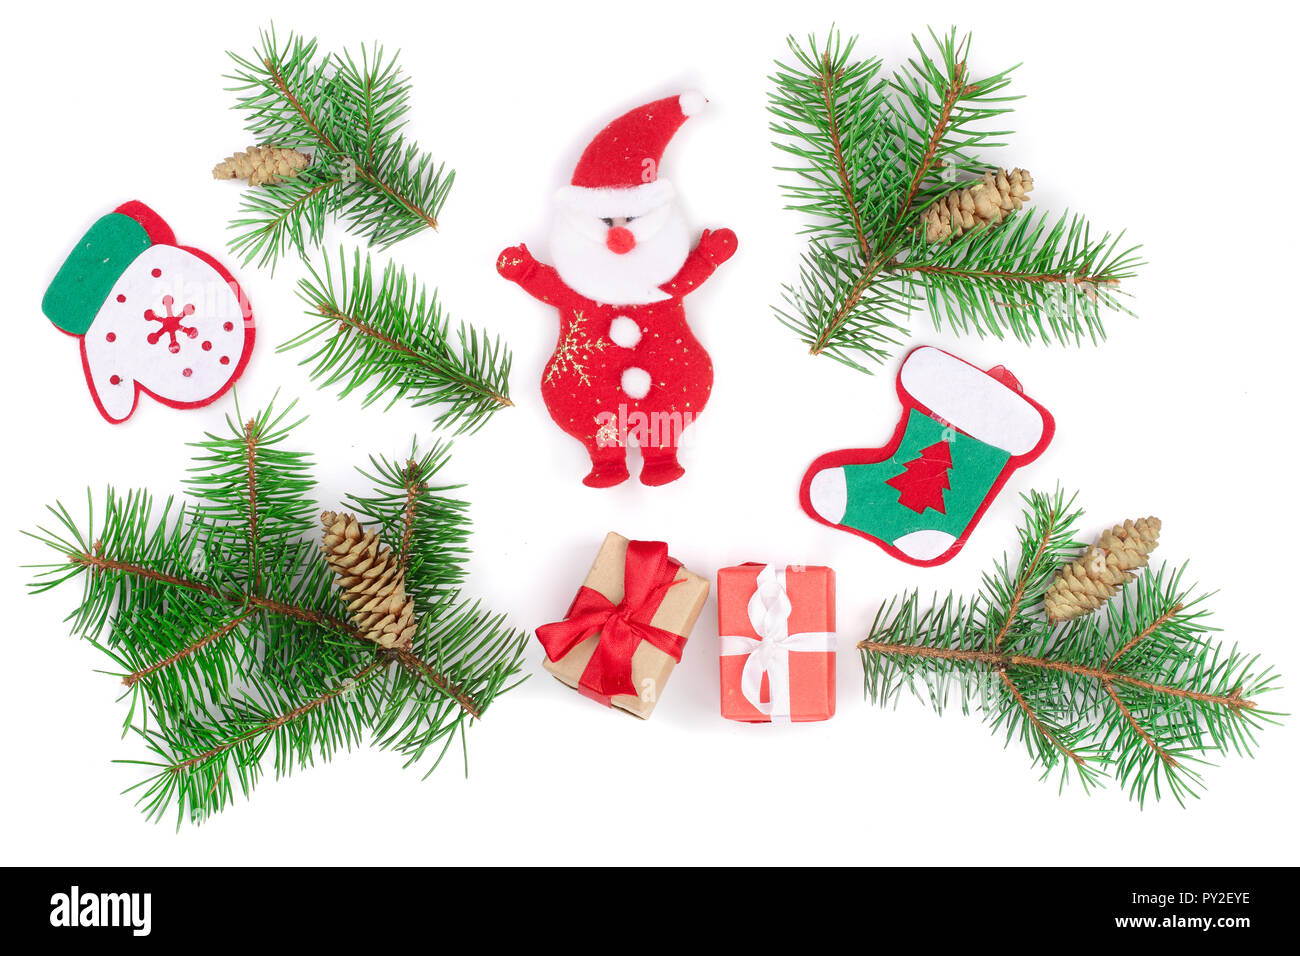 Christmas background with fir branches and Santa Claus isolated on white background. Top view. Flat lay. - Stock Image